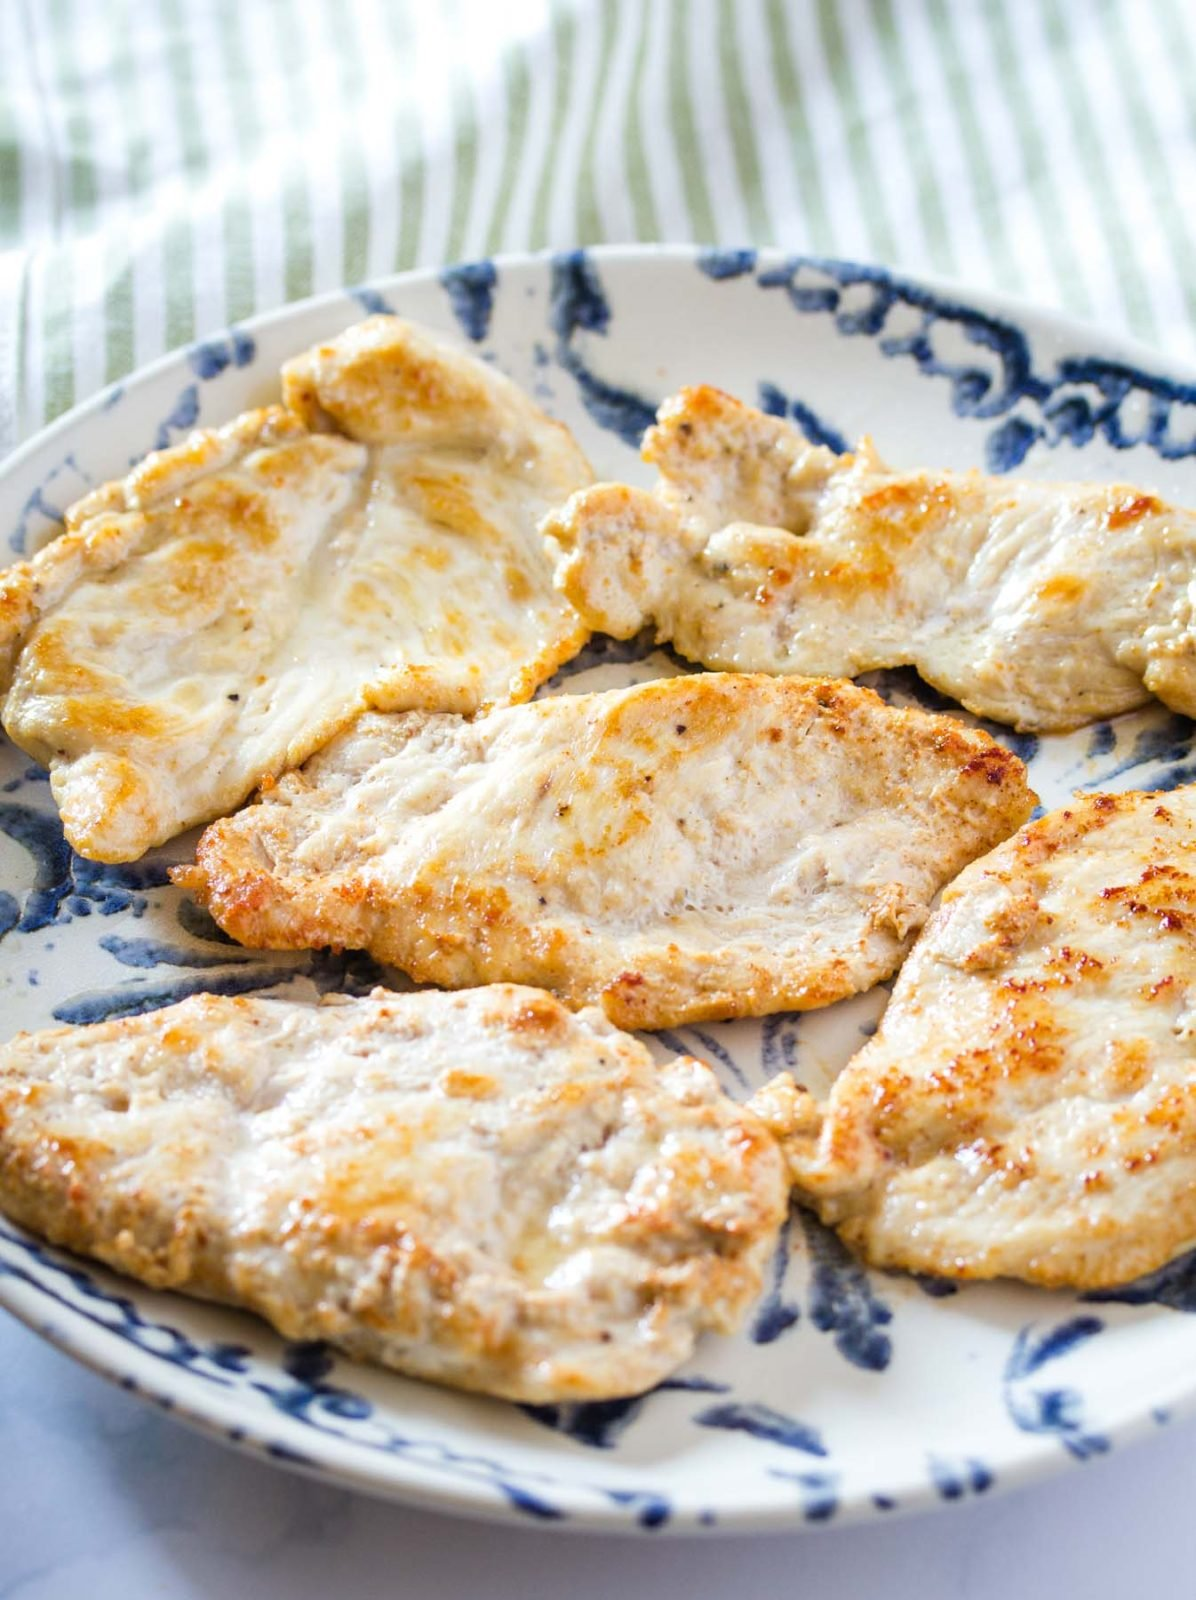 chicken breasts that have been lightly browned and cooked through on a blue and white dinner plate